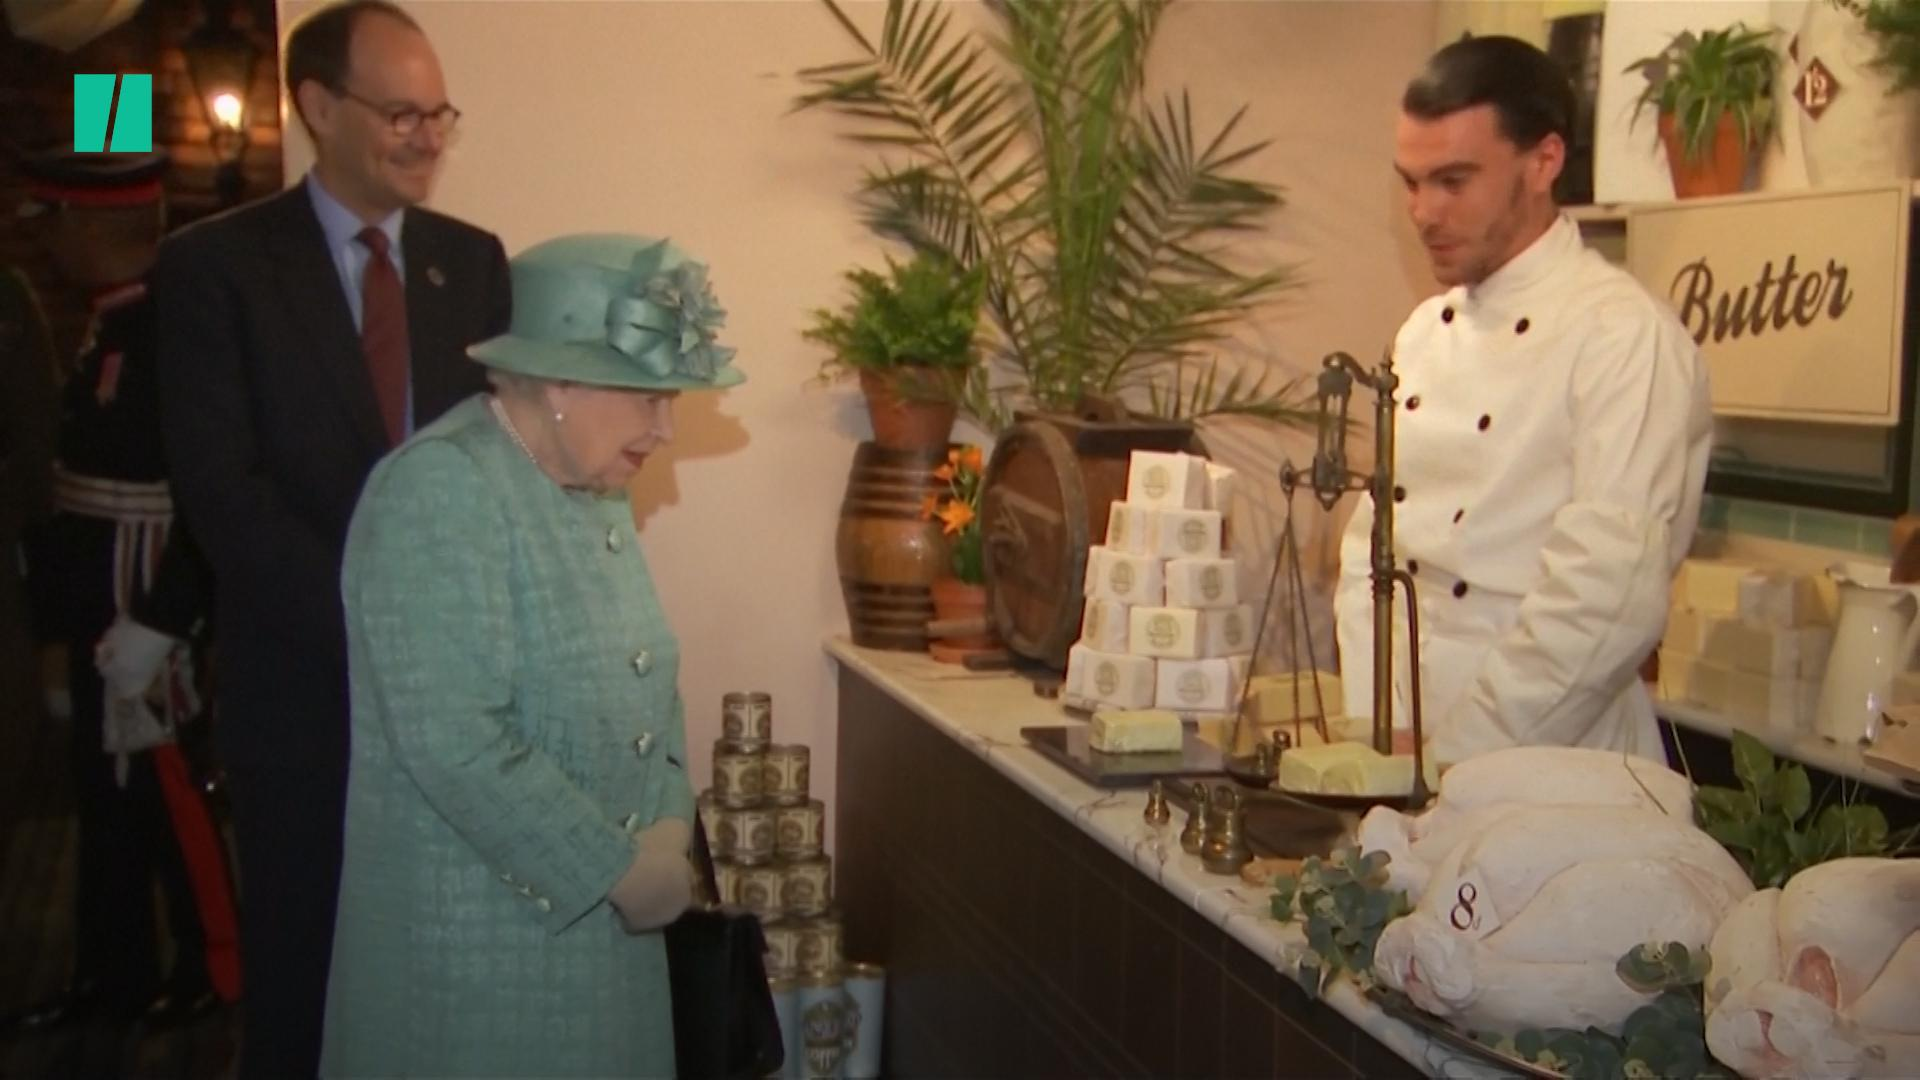 The Queen Had A Curious Response To Seeing A Self-Service Till For The First Time